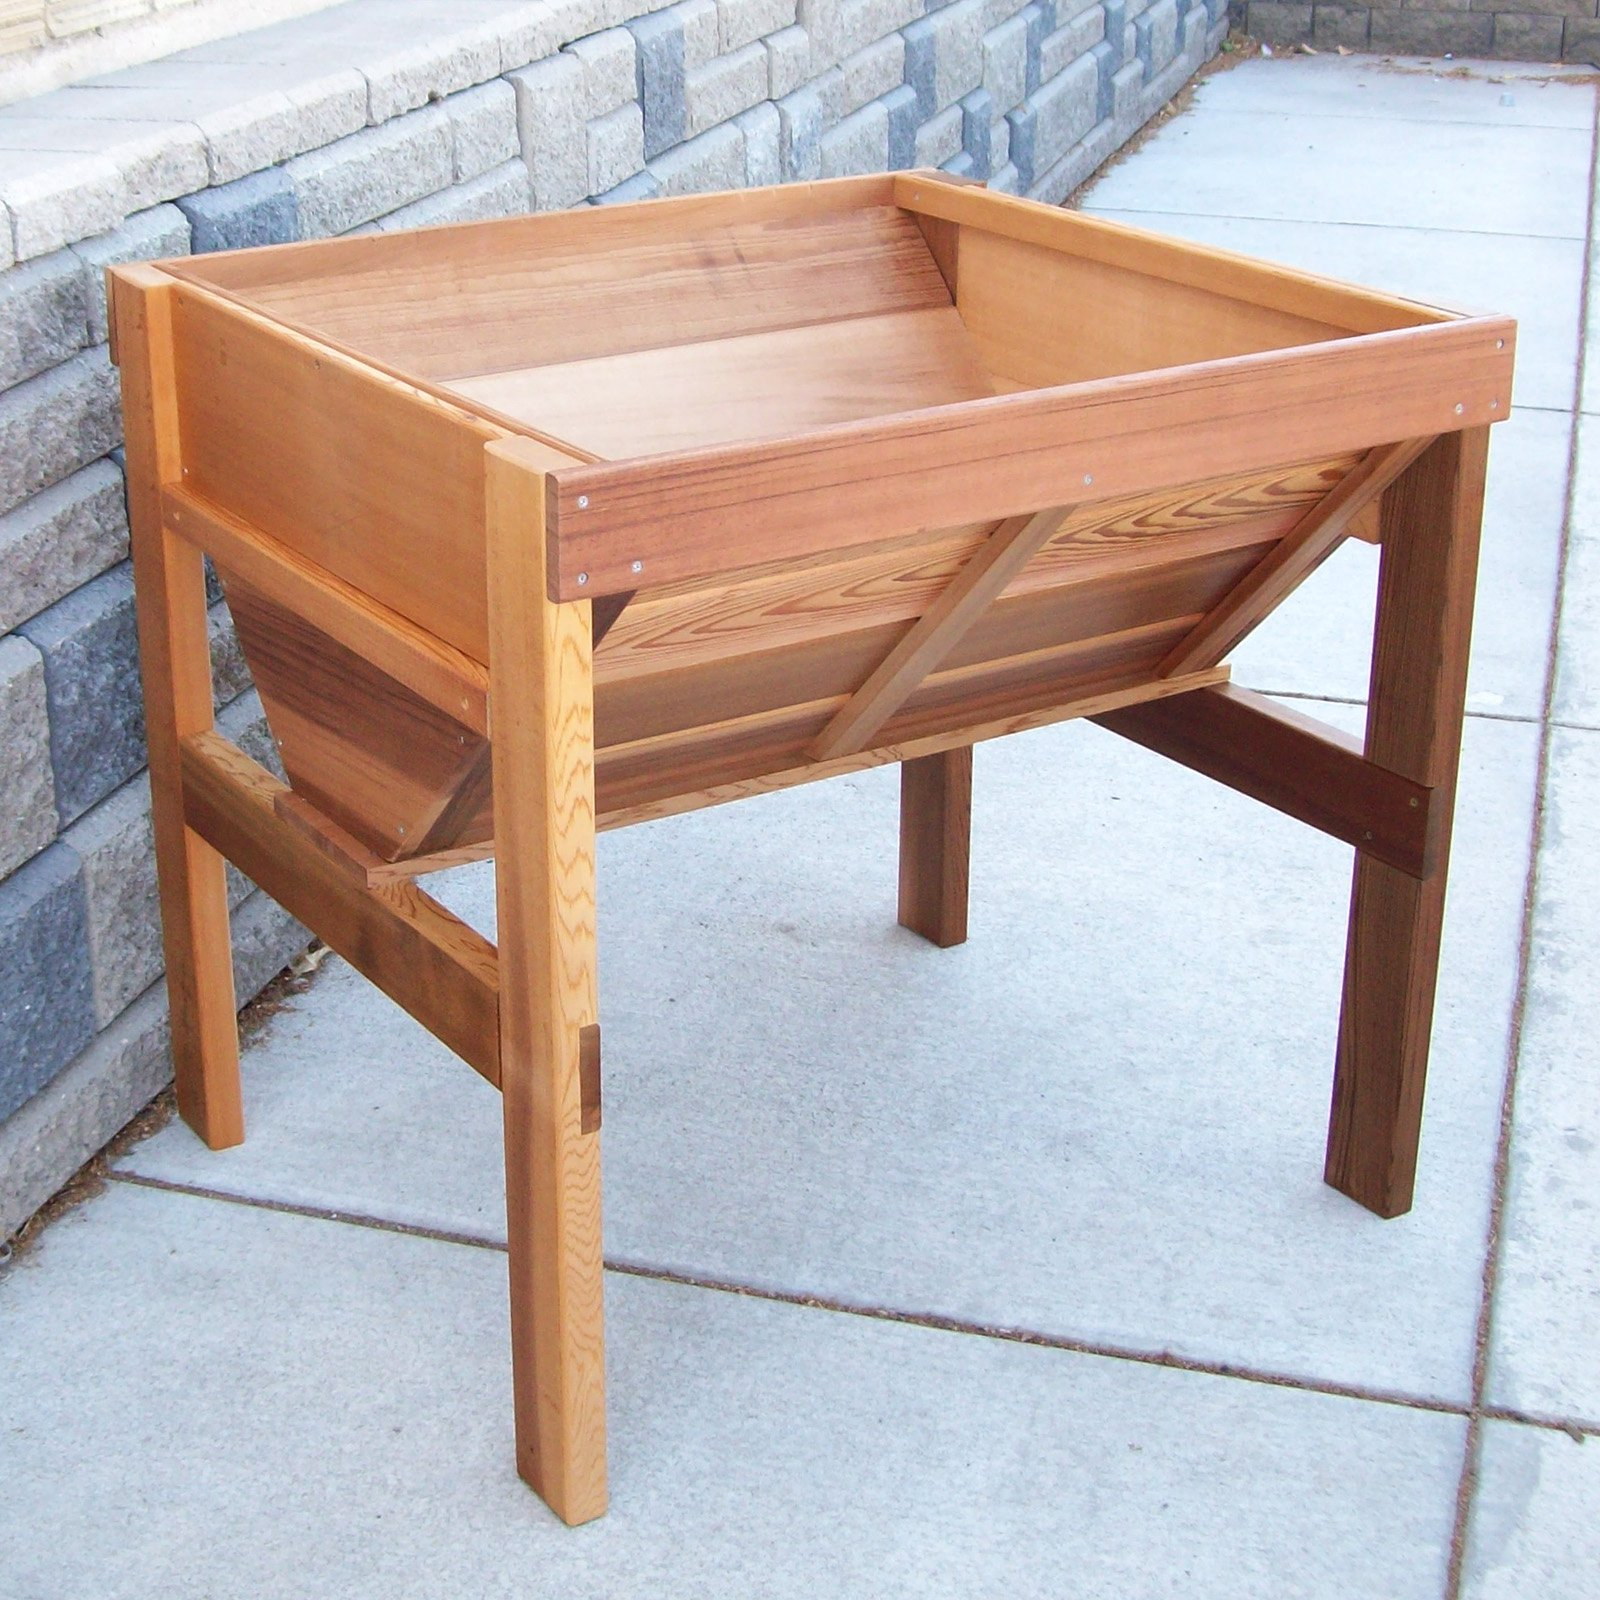 Wood Country Cedar Wood Vegetable Raised Planter Box Walmartcom